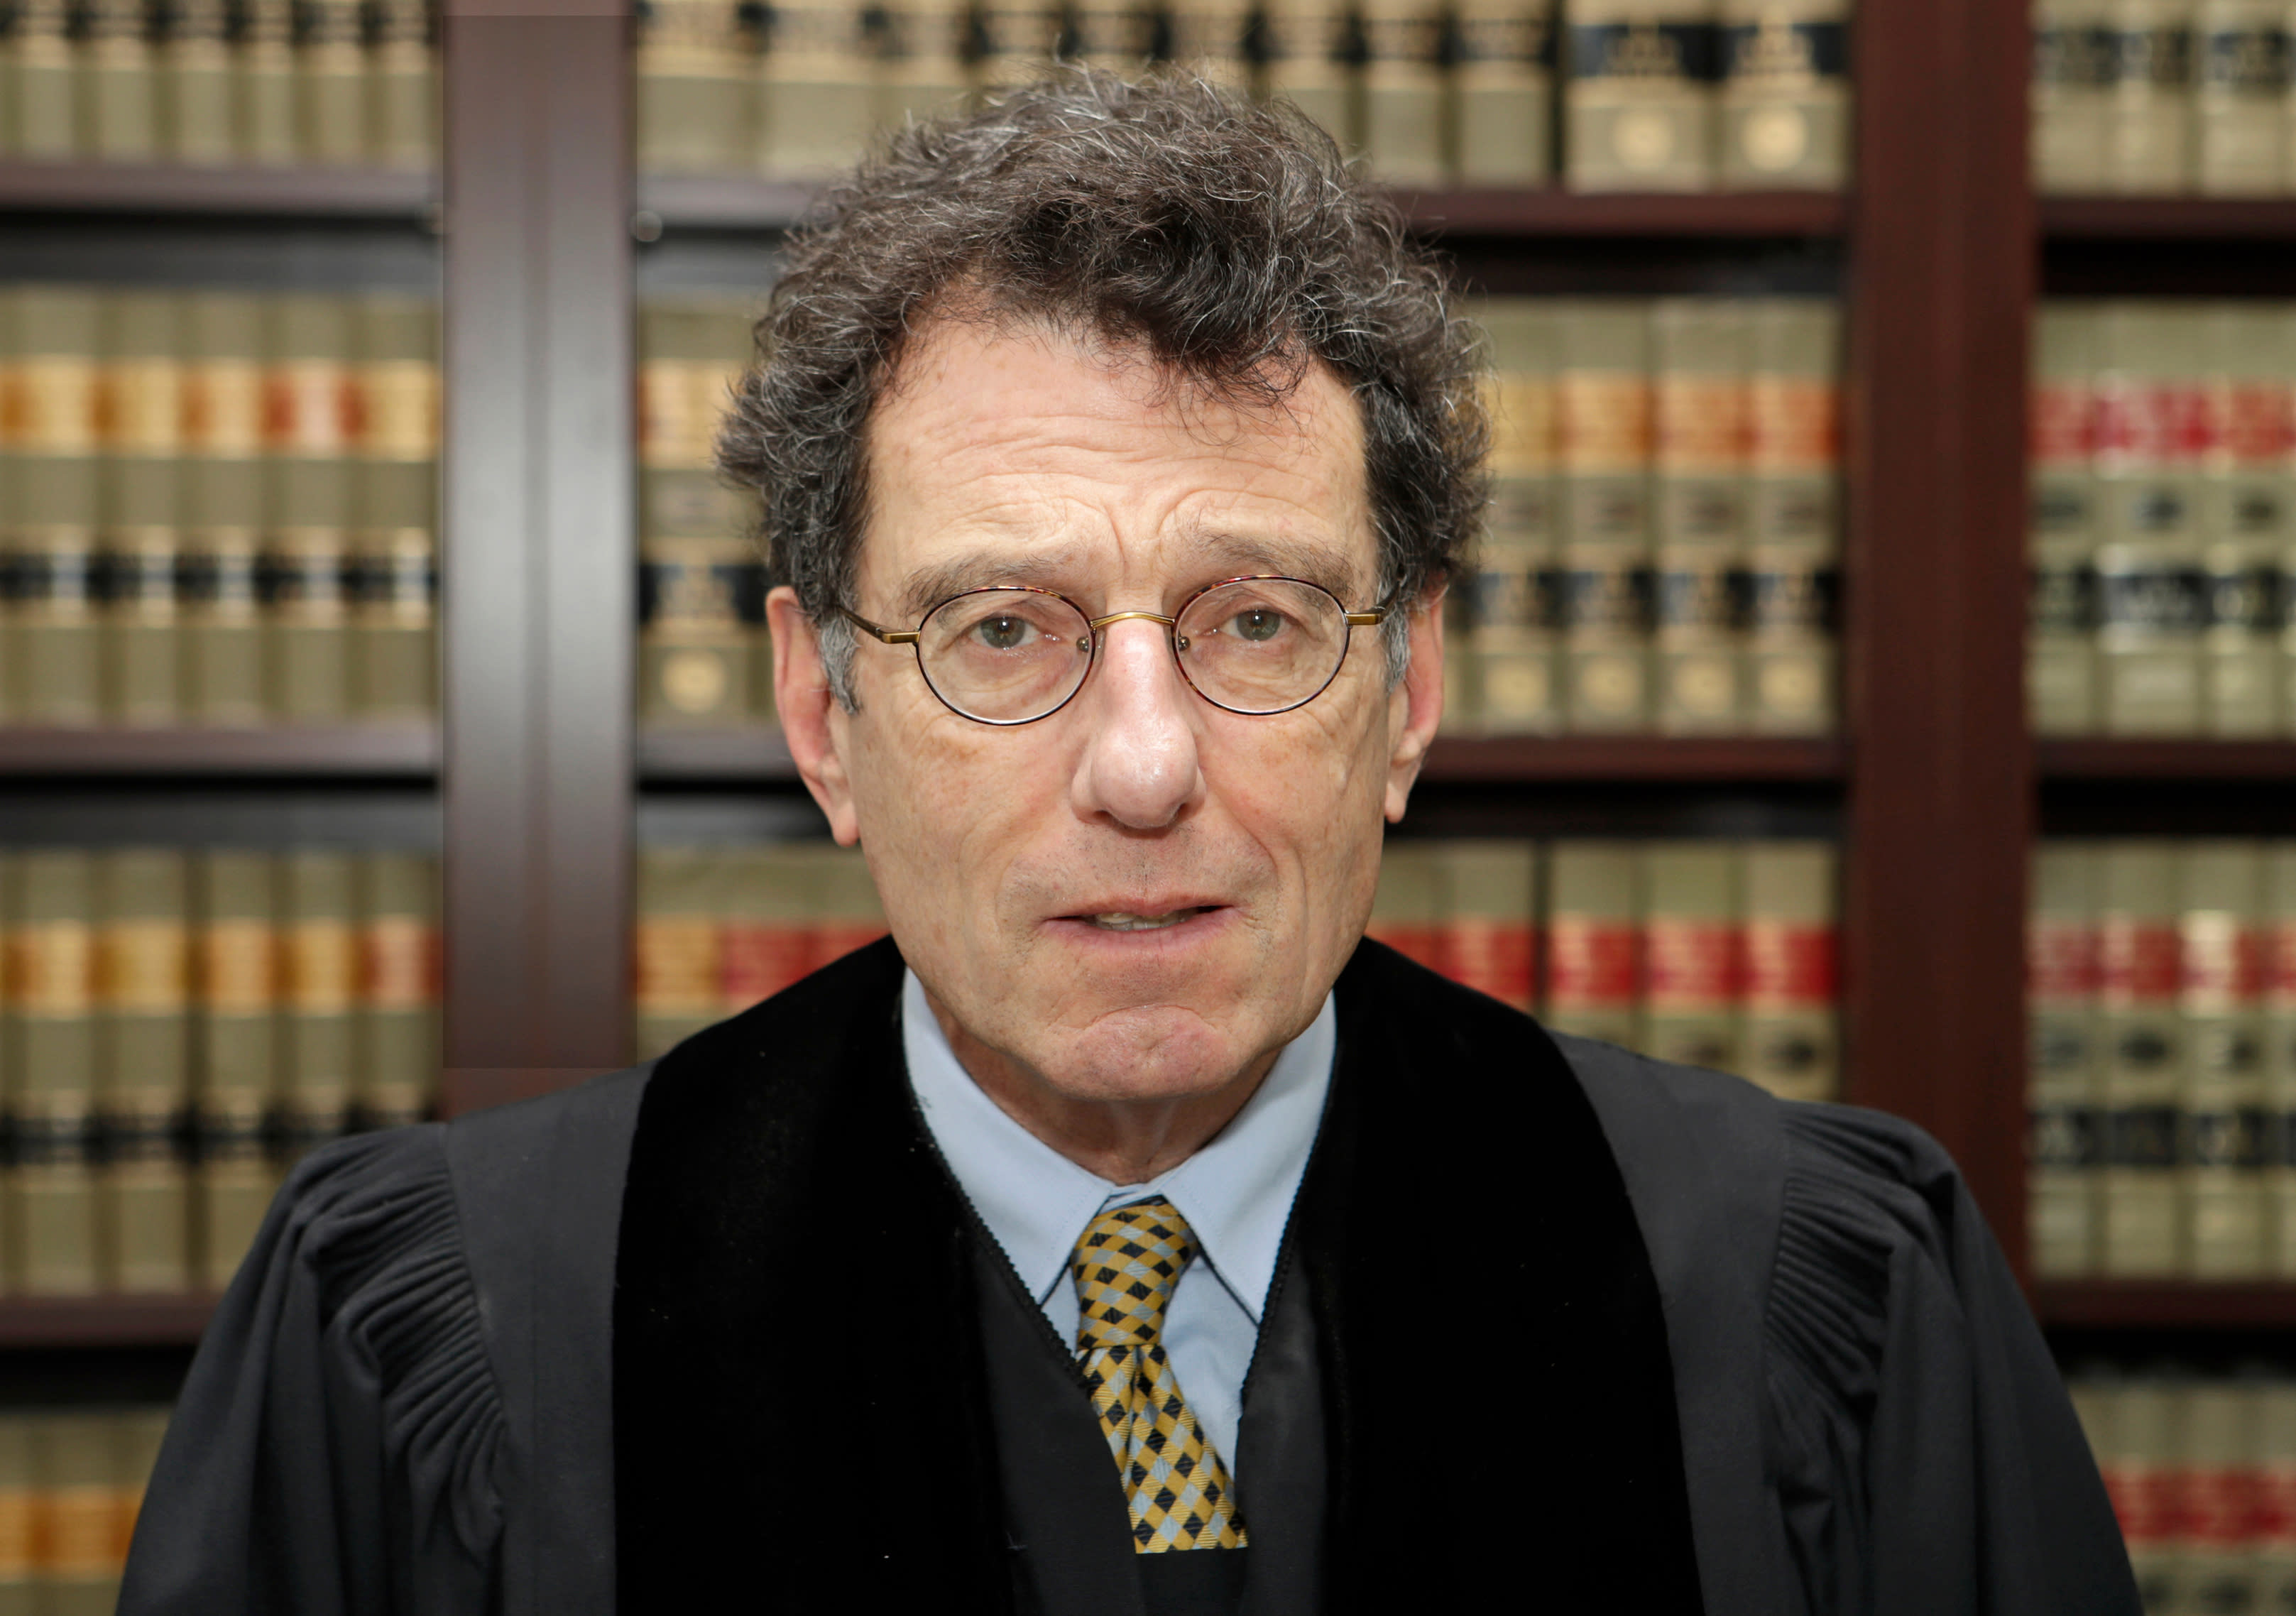 FILE – In this Jan. 11, 2018, file photo, U.S. District Judge Dan Polster poses for a portrait in his office in Cleveland. Two Ohio counties are asking Polster to find that drugmakers and distributors were not allowed to ship suspicious orders of controlled substances to pharmacies. (AP Photo/Tony Dejak, File)